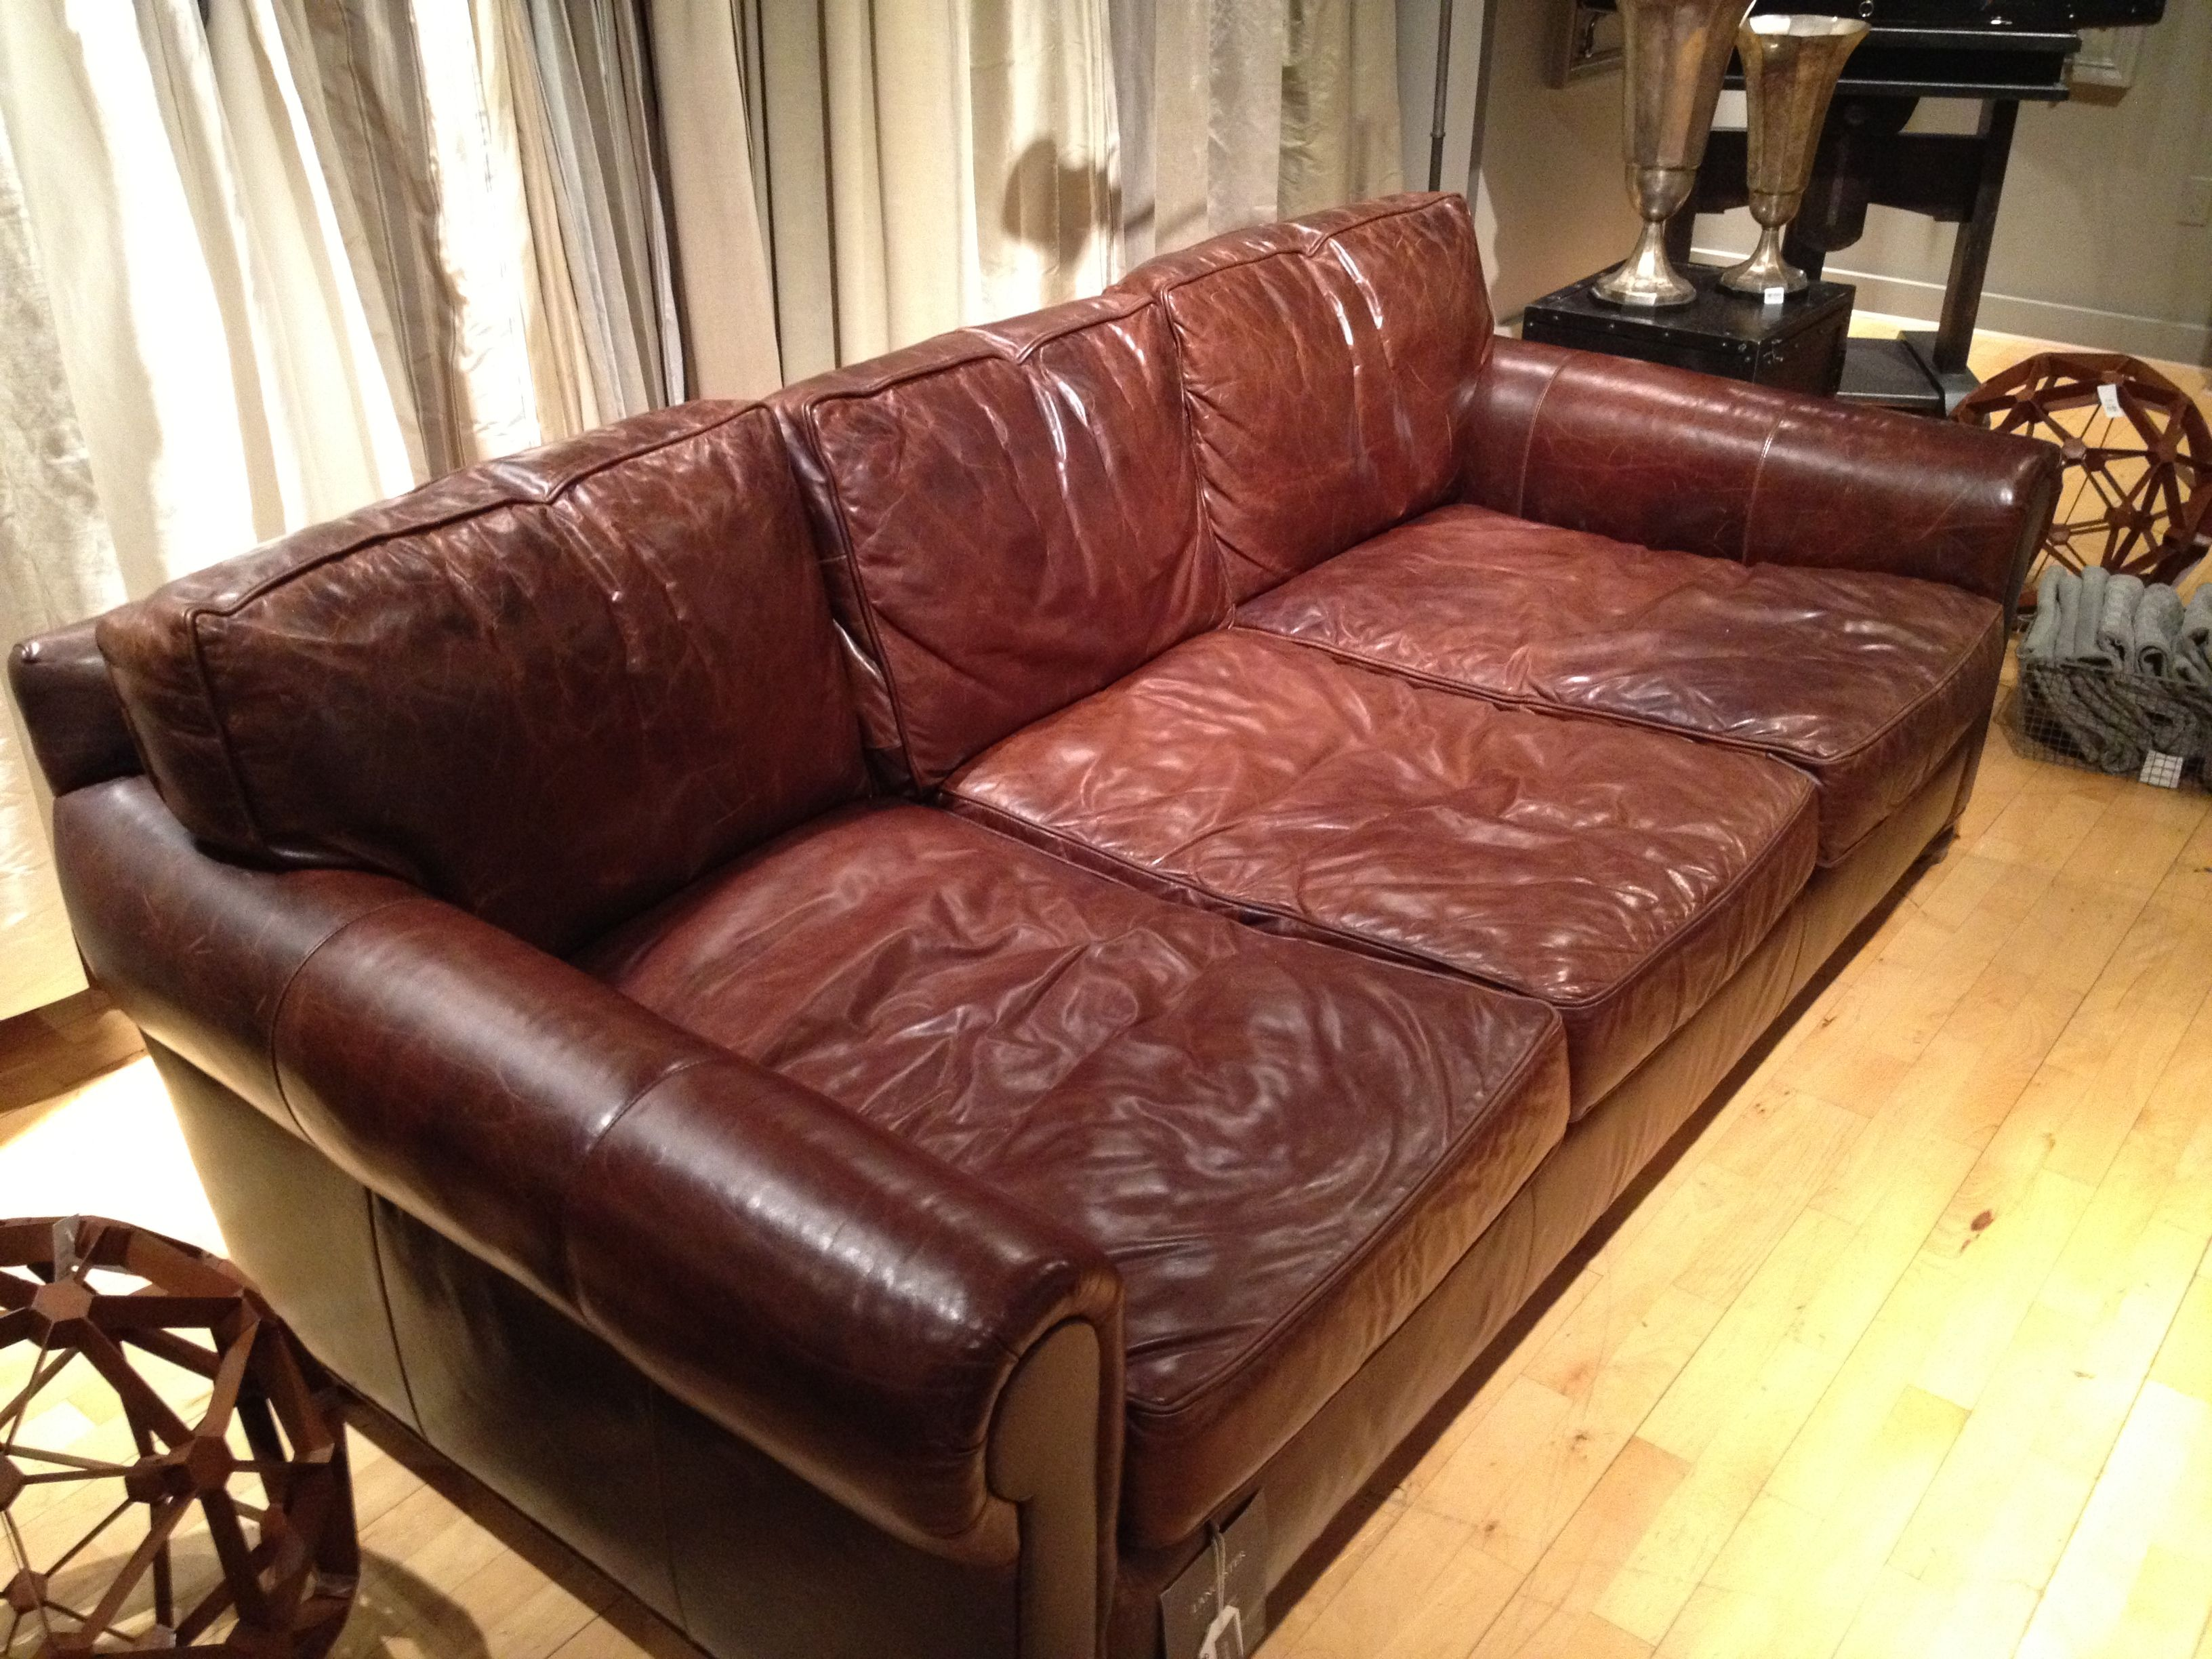 I tried this sofa out at Restoration Hardware The seats are very